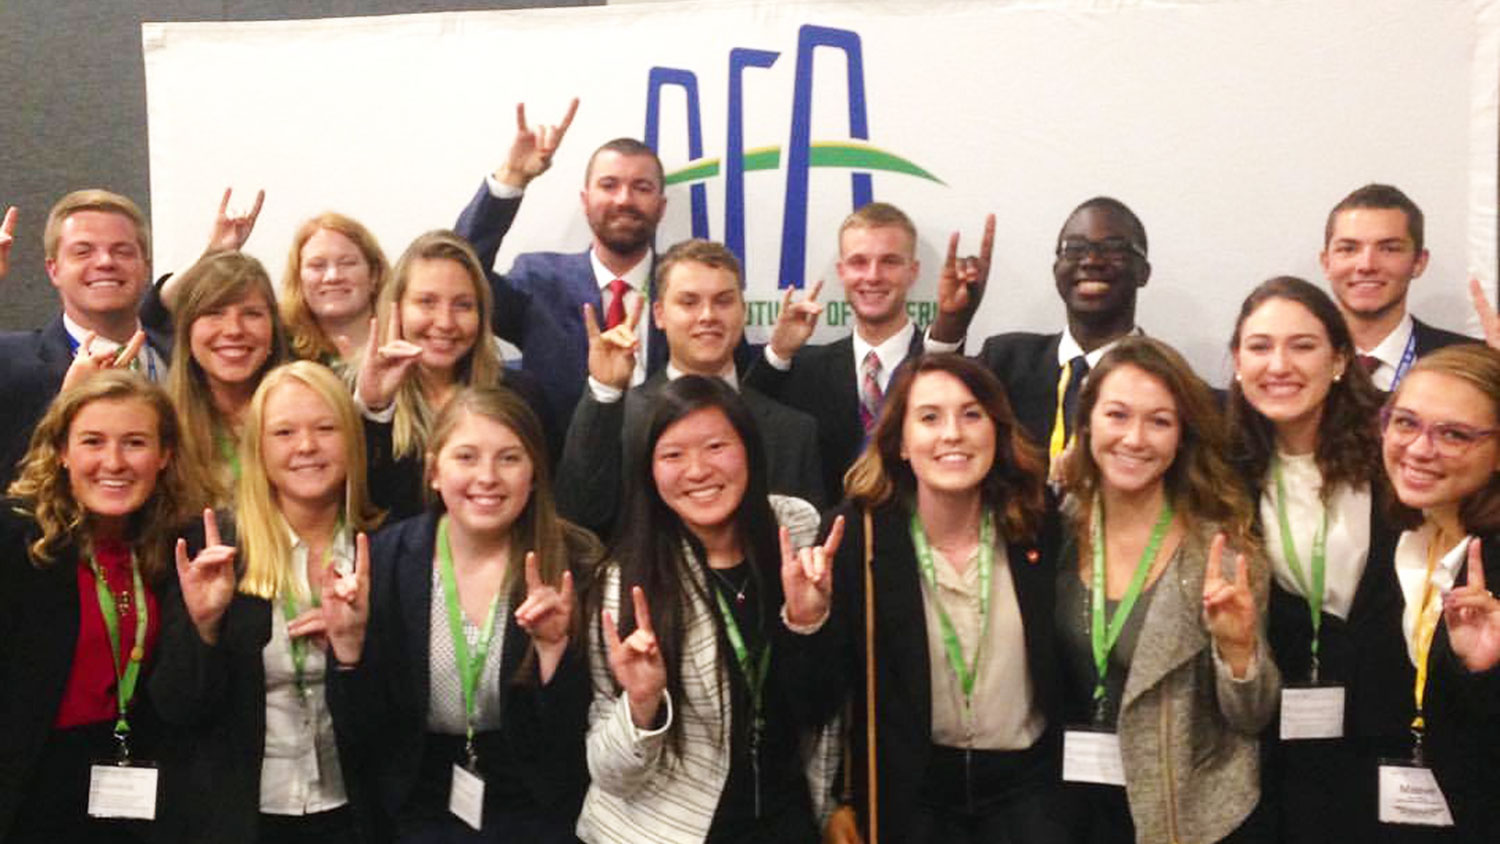 Students gathered for a group shot at the AFA Leaders Conference